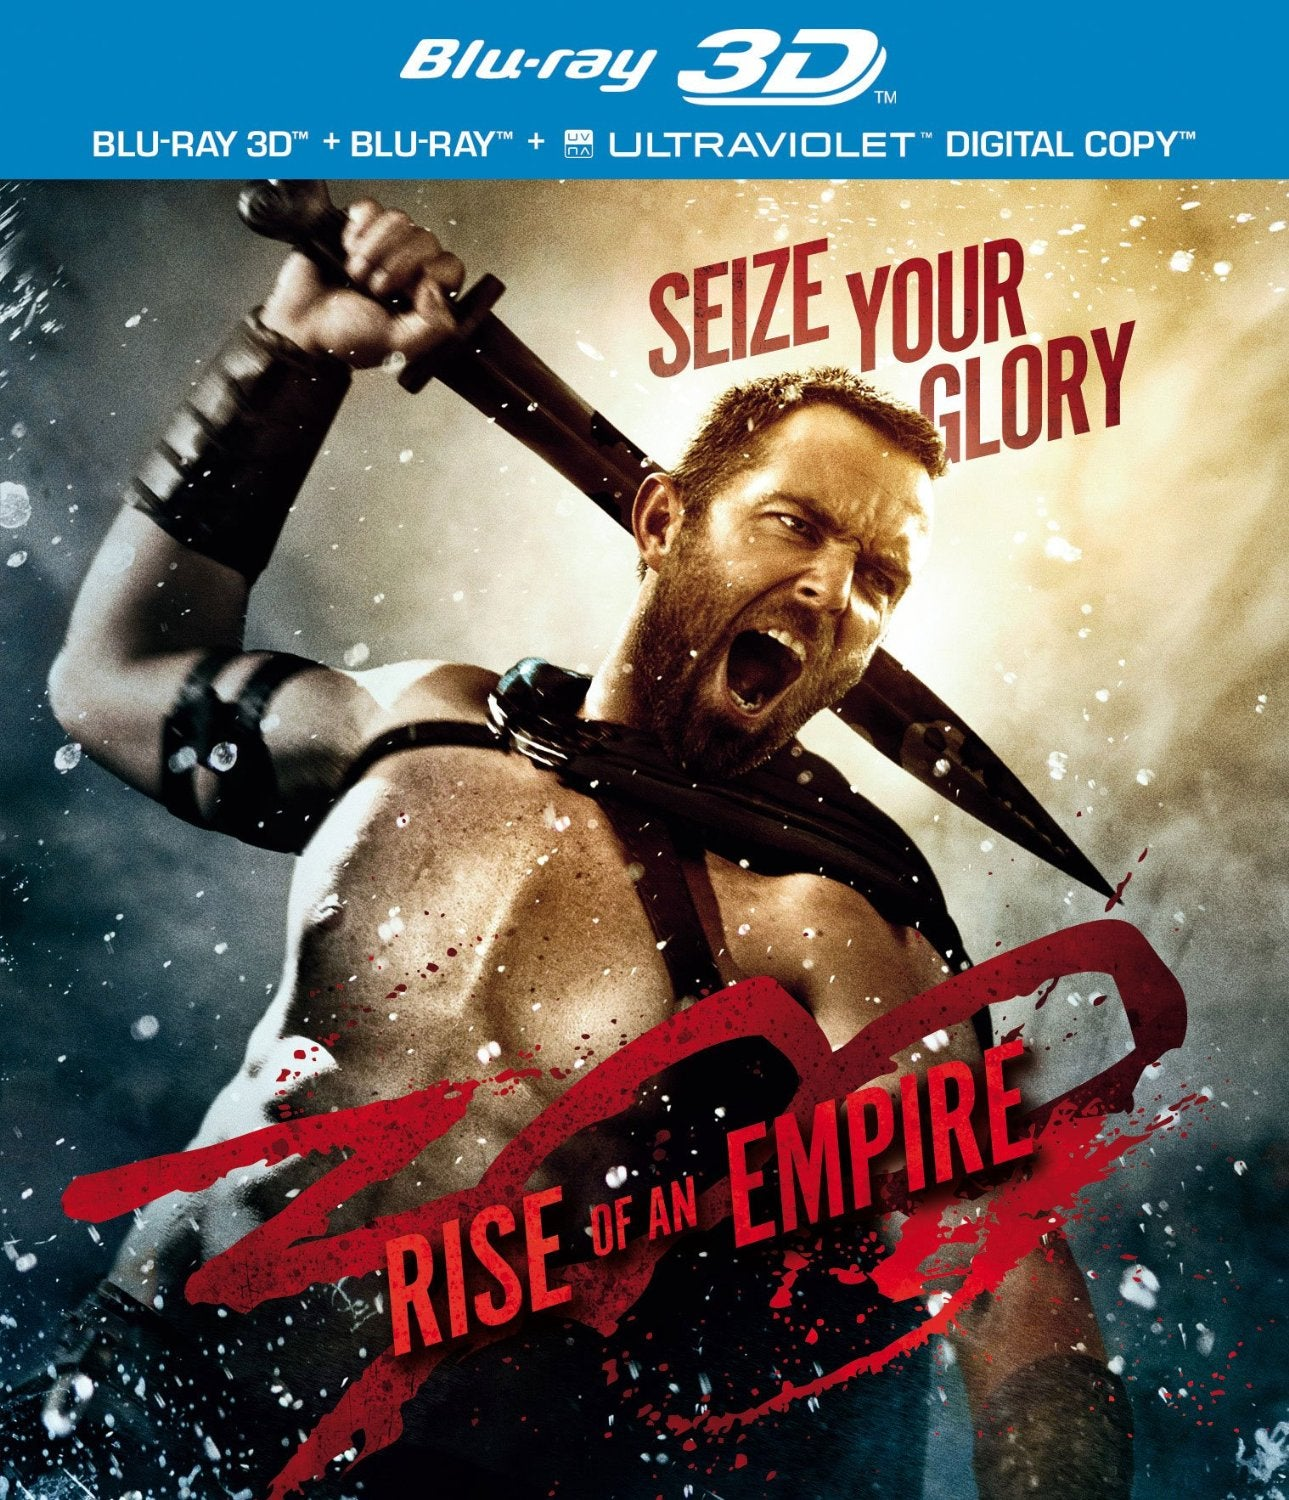 300: rise of an empire coming to blu-ray and dvd on june 24; special